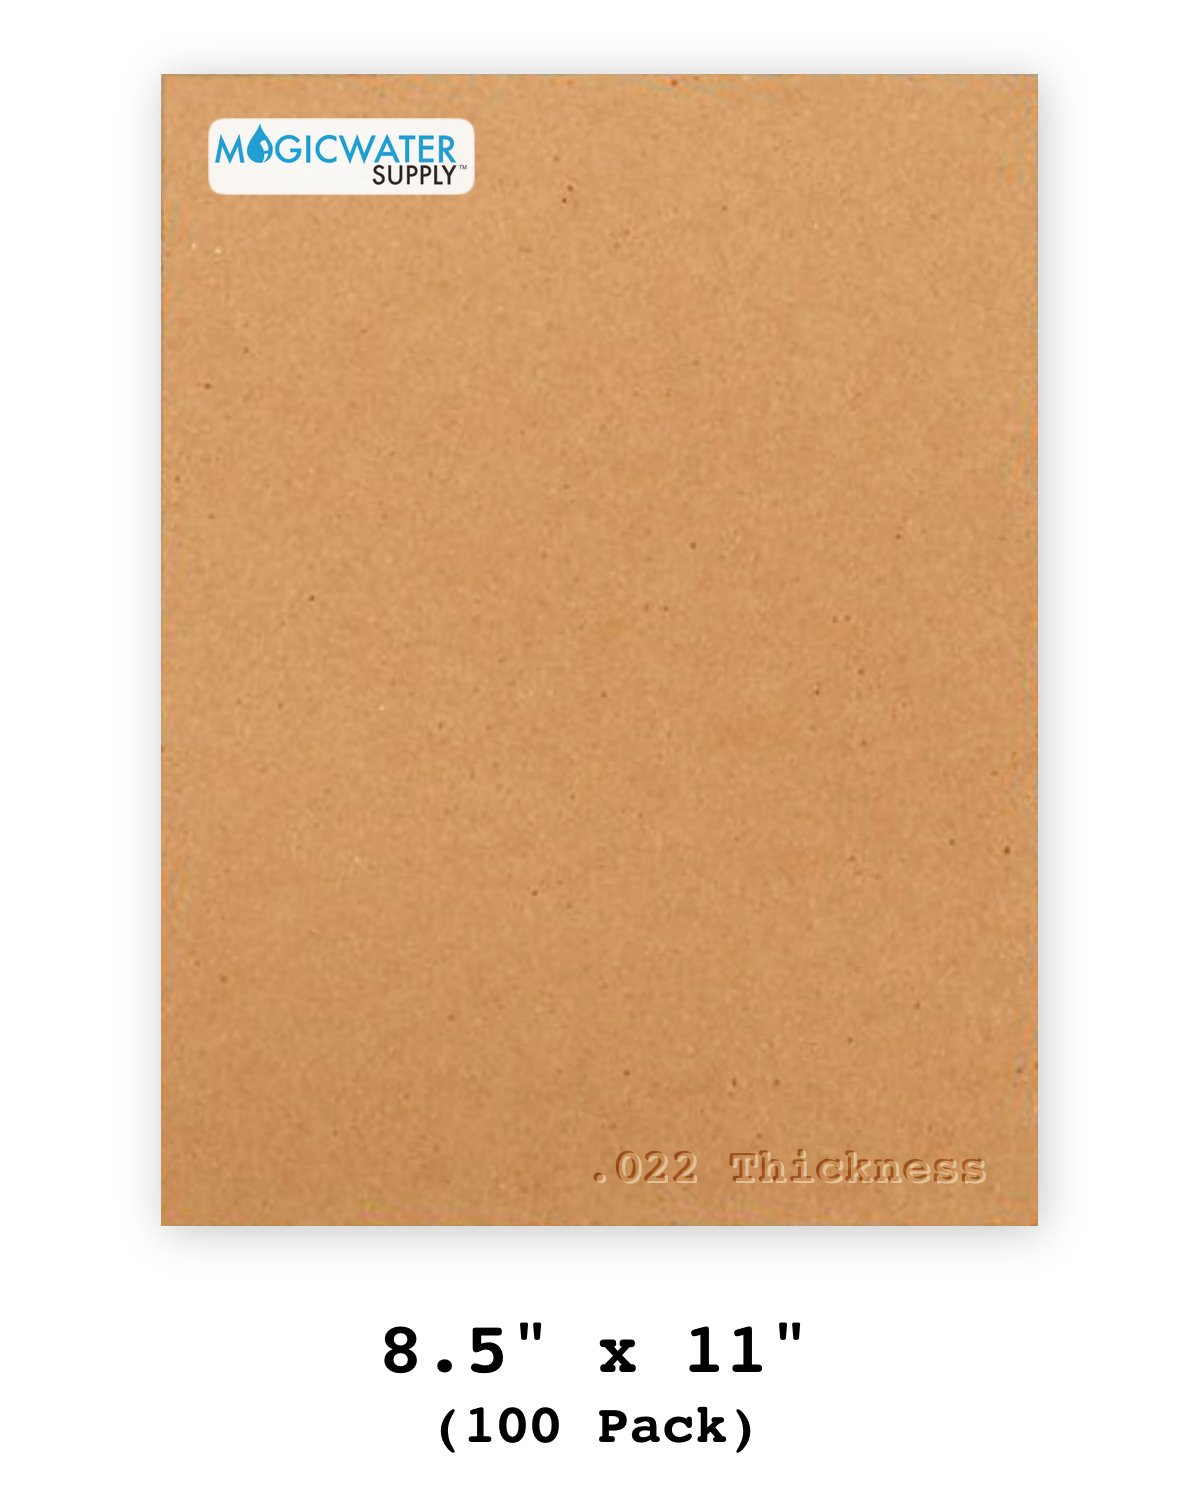 100 Chipboard Sheets 8.5 x 11 inch - 22pt (Point) Light Weight Brown Kraft Cardboard for Scrapbooking & Picture Frame Backing (.022 Caliper Thick) Paper Board | MagicWater Supply MWS